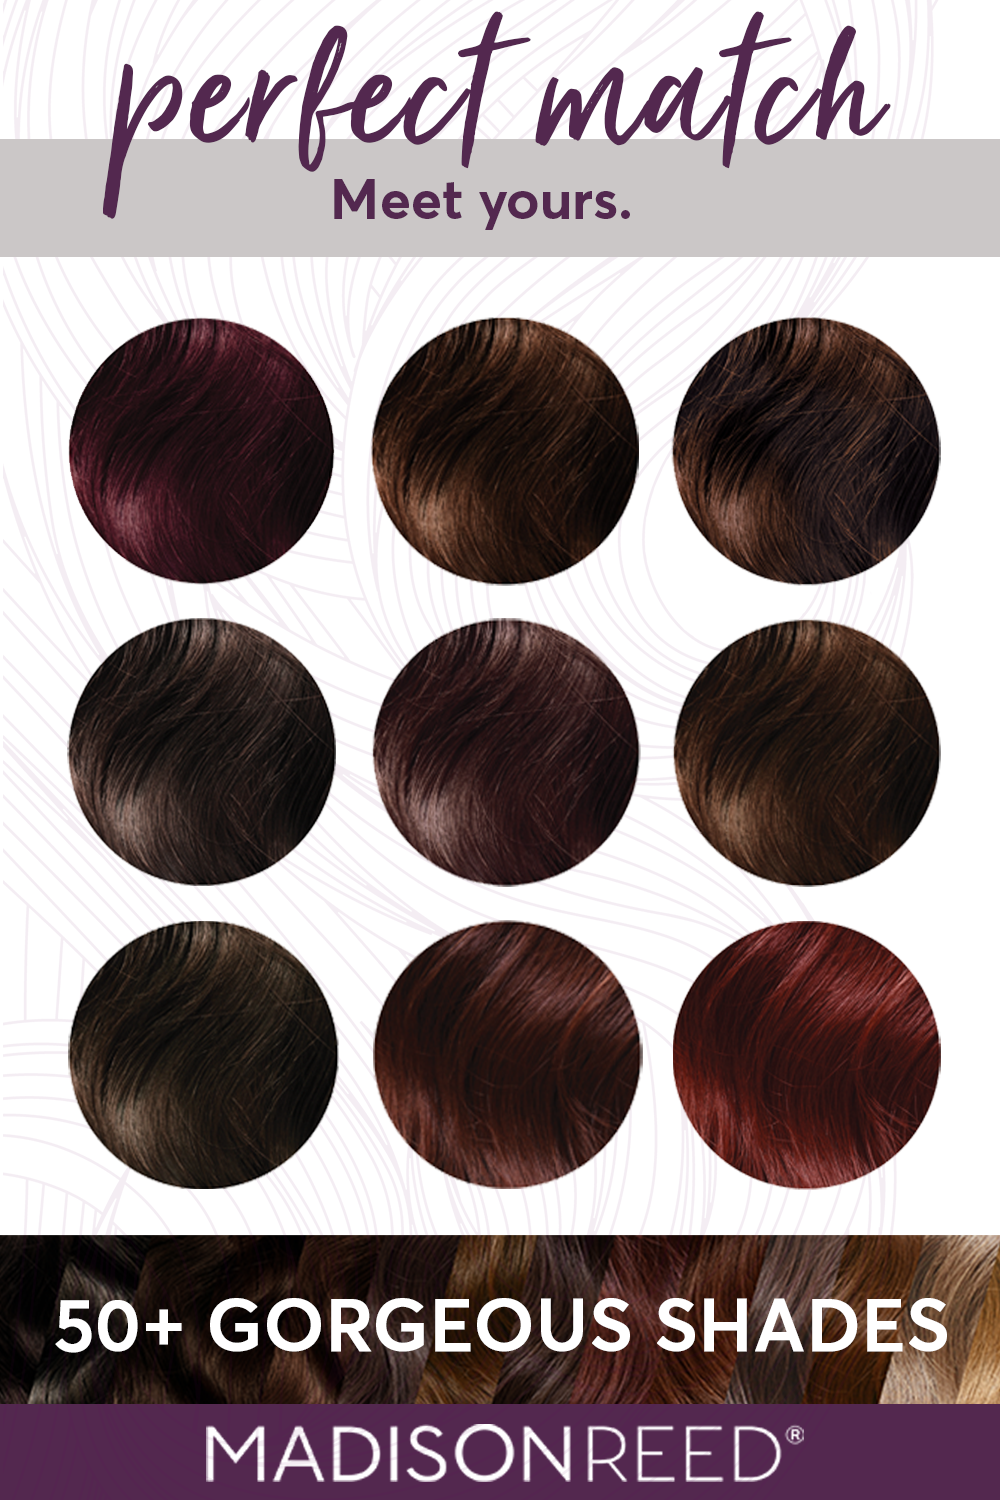 Take The Color Quiz To Find Your Perfect Hair Color Shade Aubergine Purple Hair Hot Chocolate Br Hair Color For Black Hair At Home Hair Color Hair Color Quiz